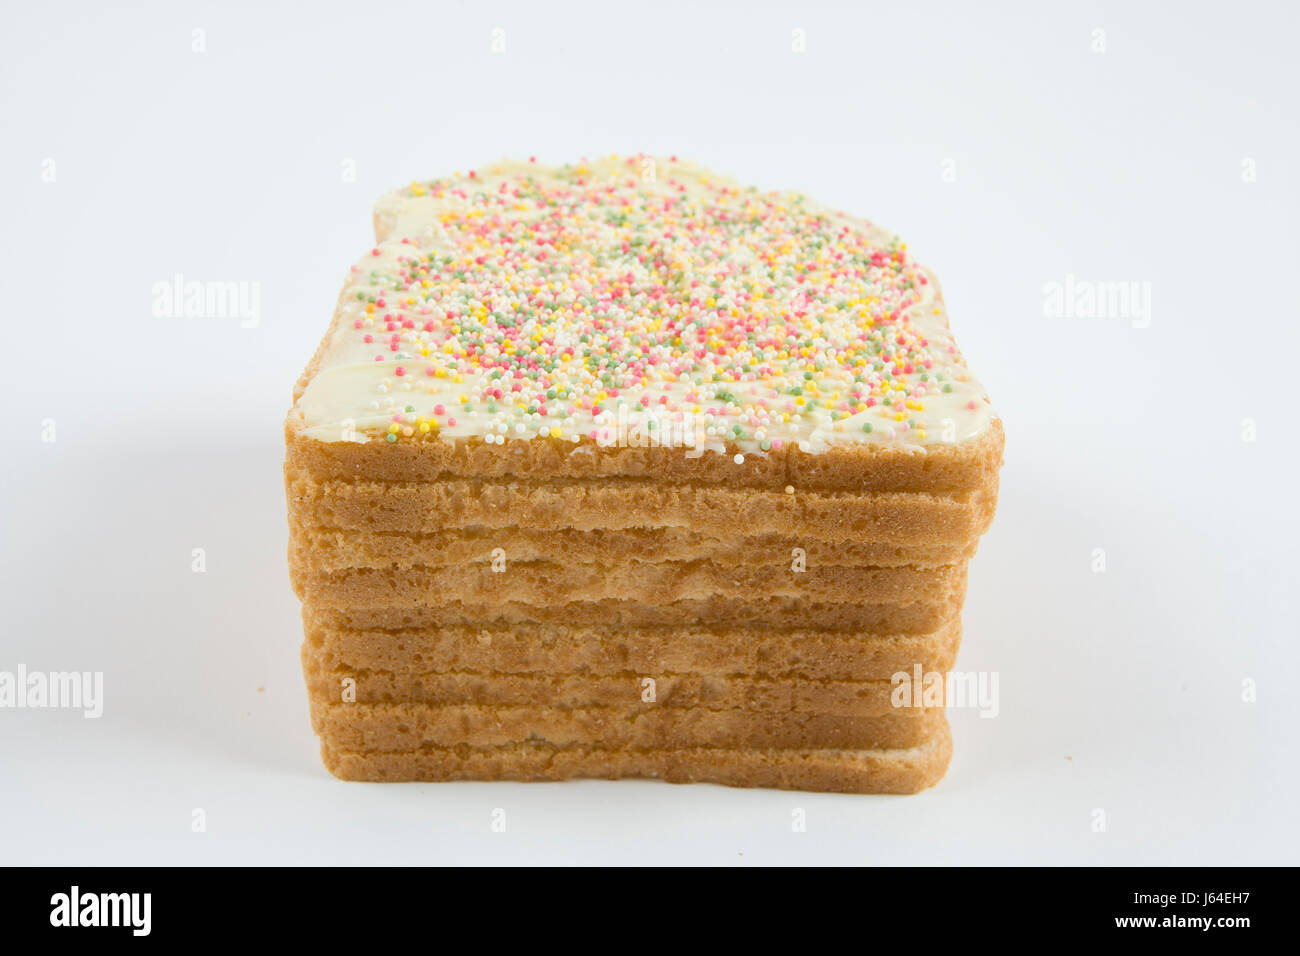 a quirky icing birthday bread covered with sprinkles on white background - Stock Image